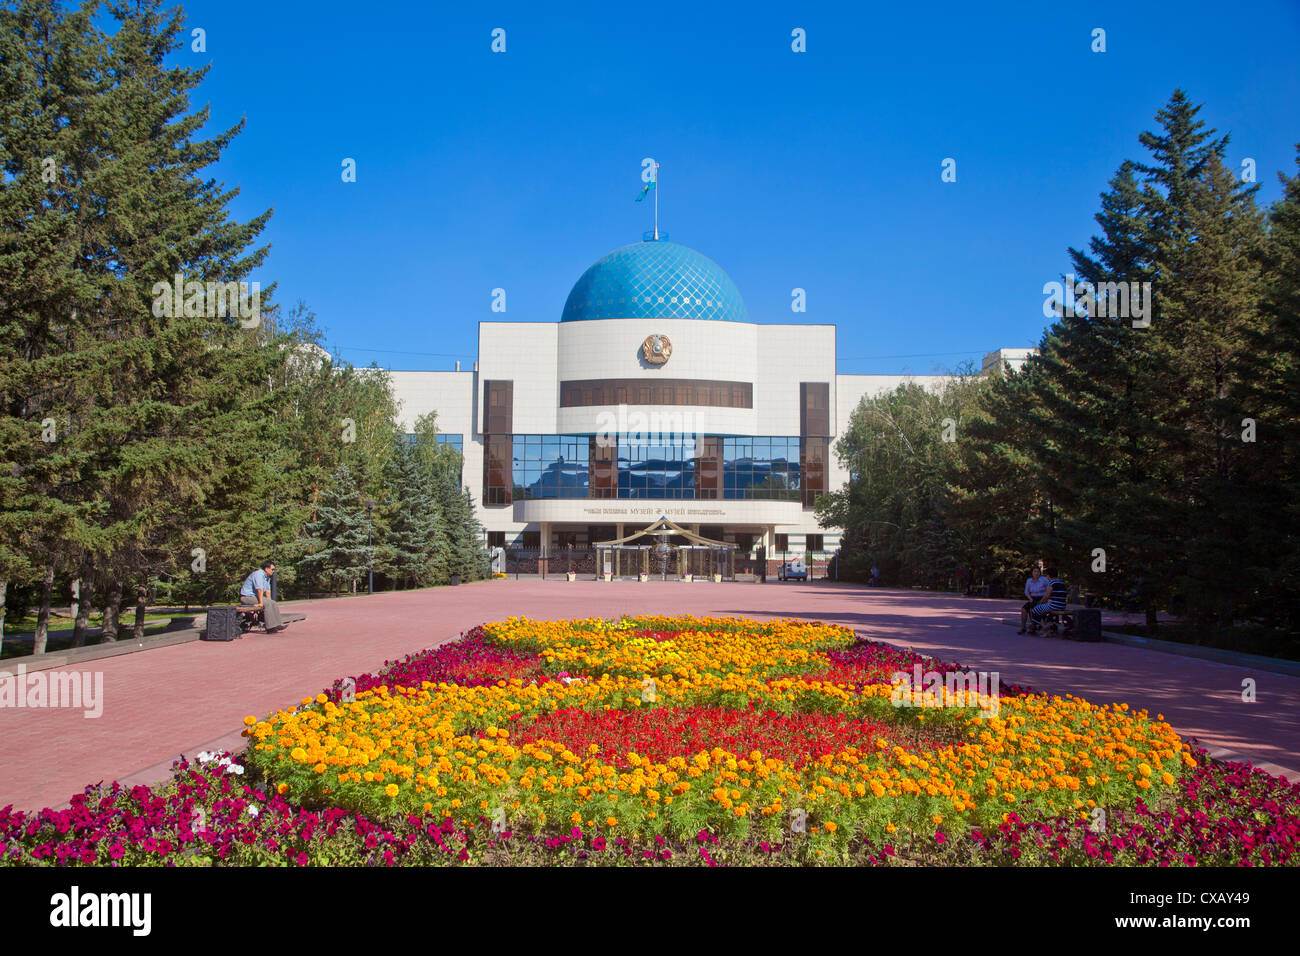 The Presidents museum, Old City, Astana, Kazakhstan, Central Asia, Asia - Stock Image